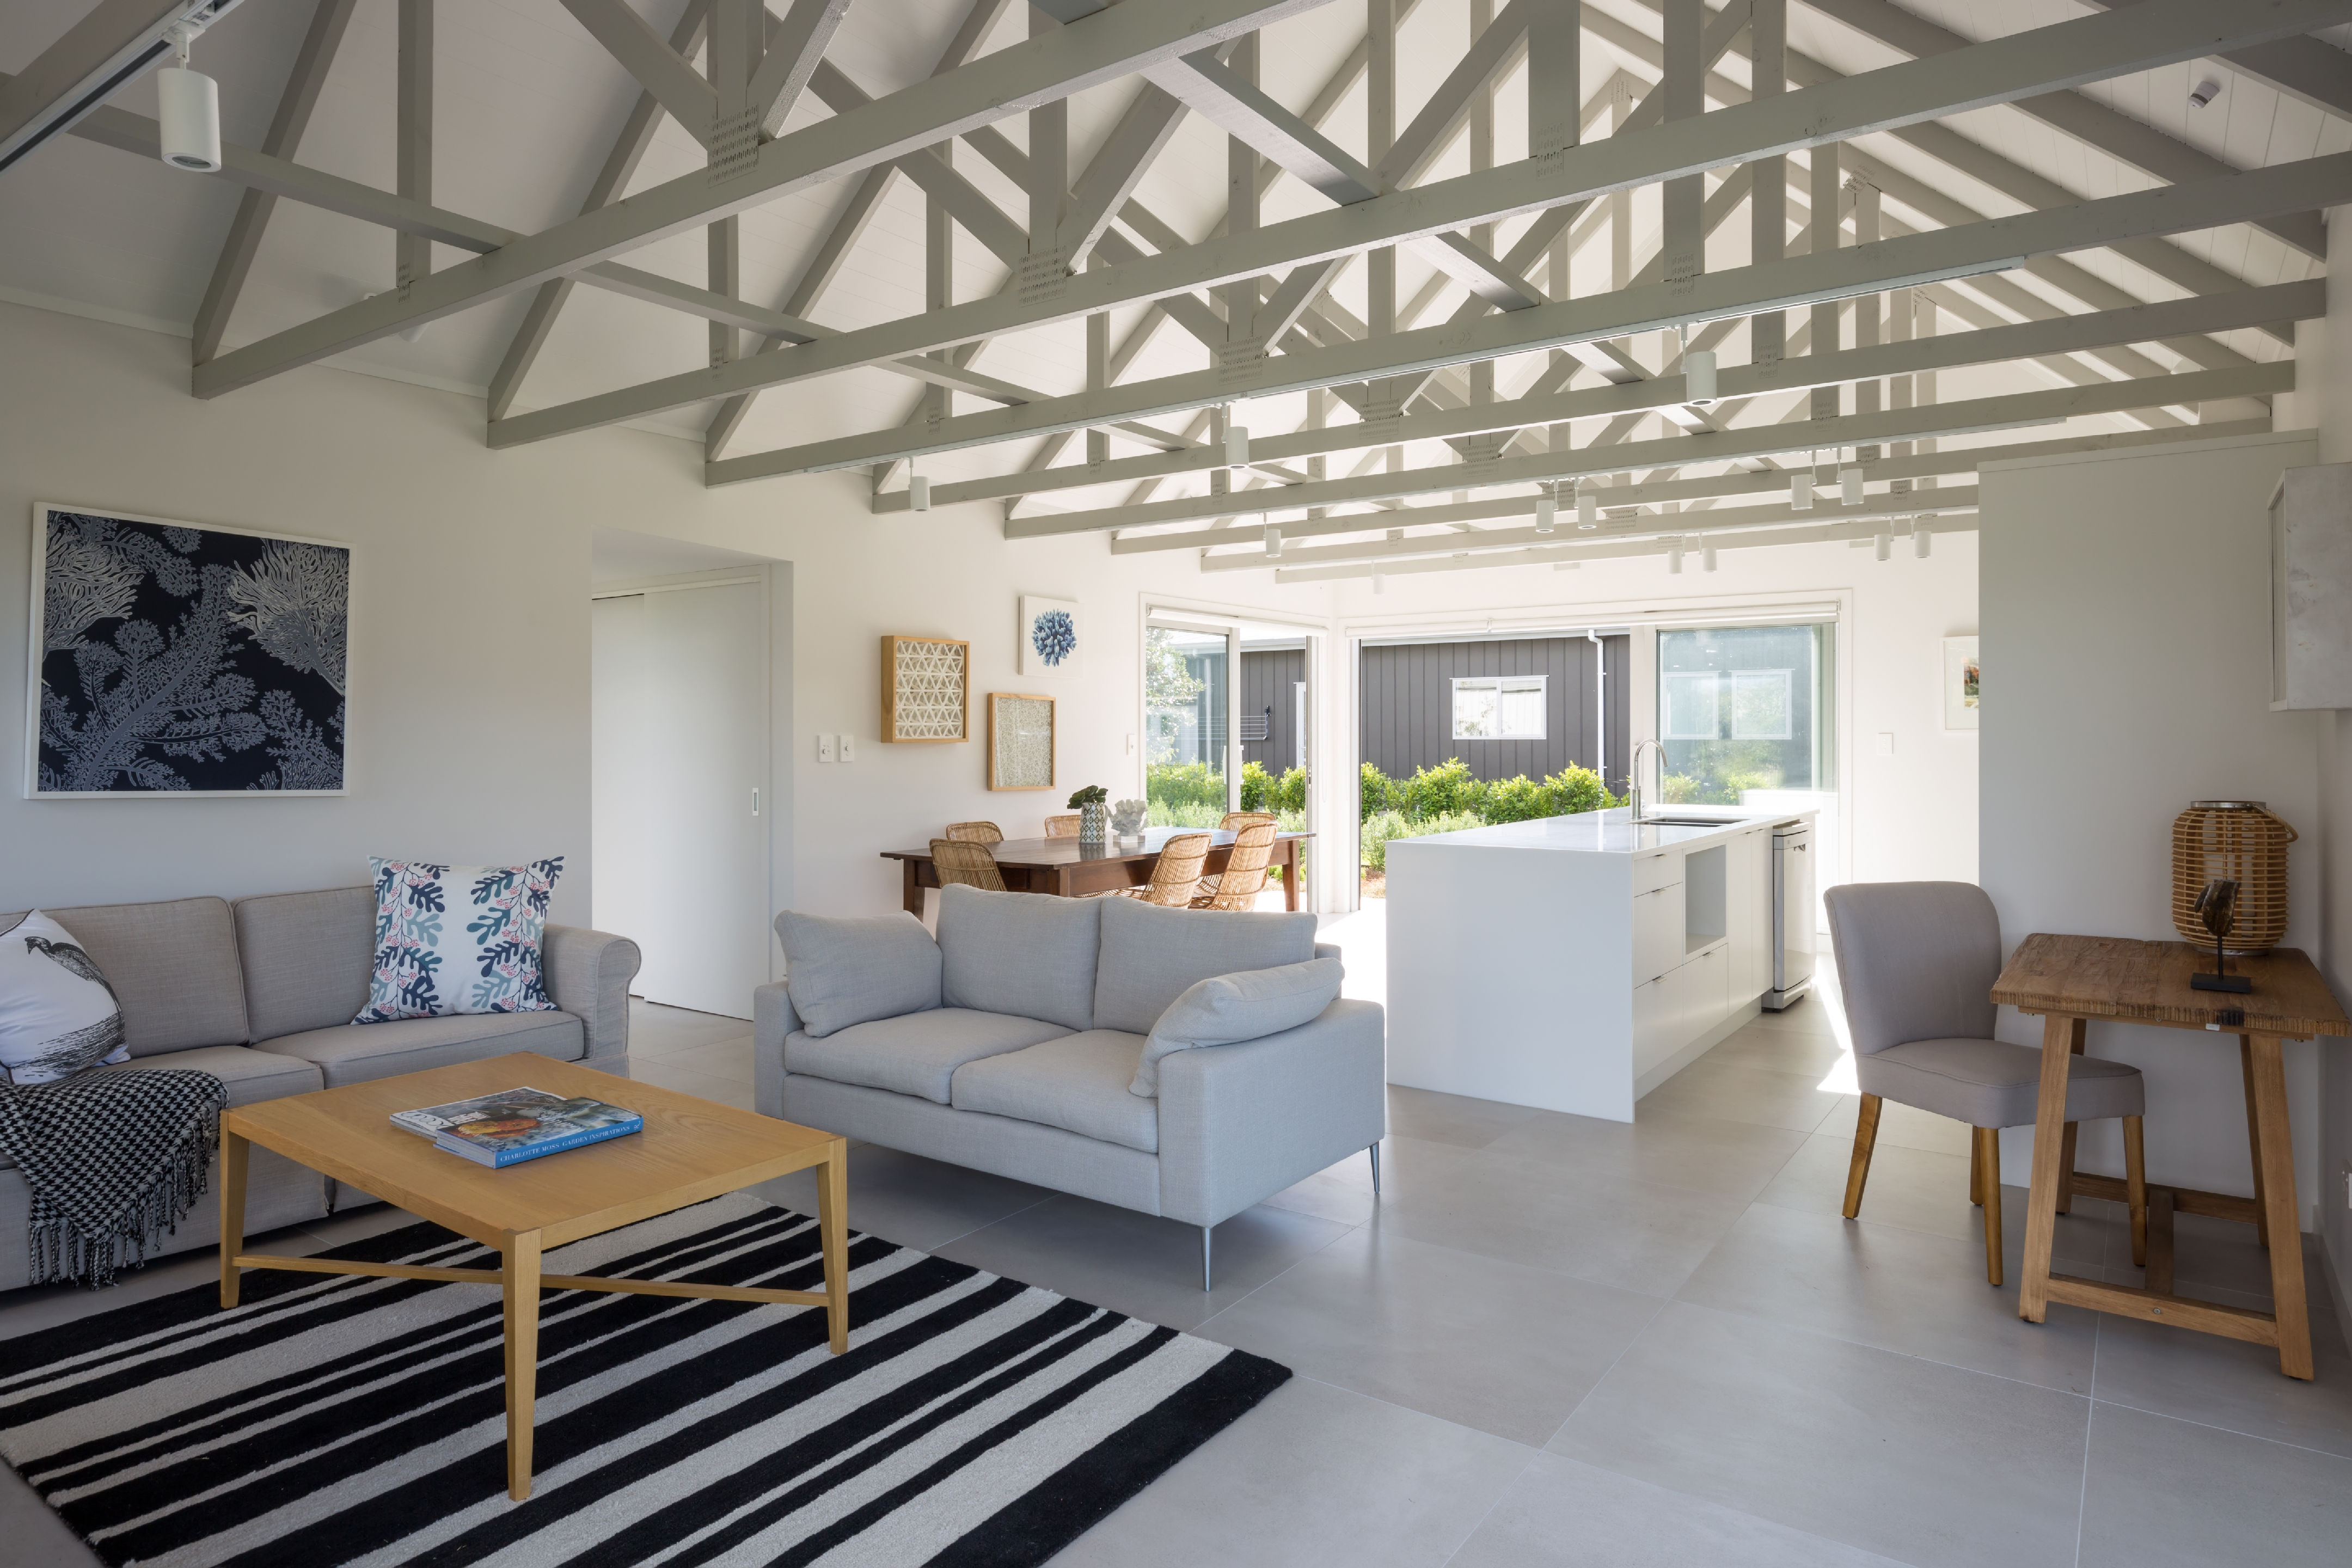 Cooks Beach house architecture